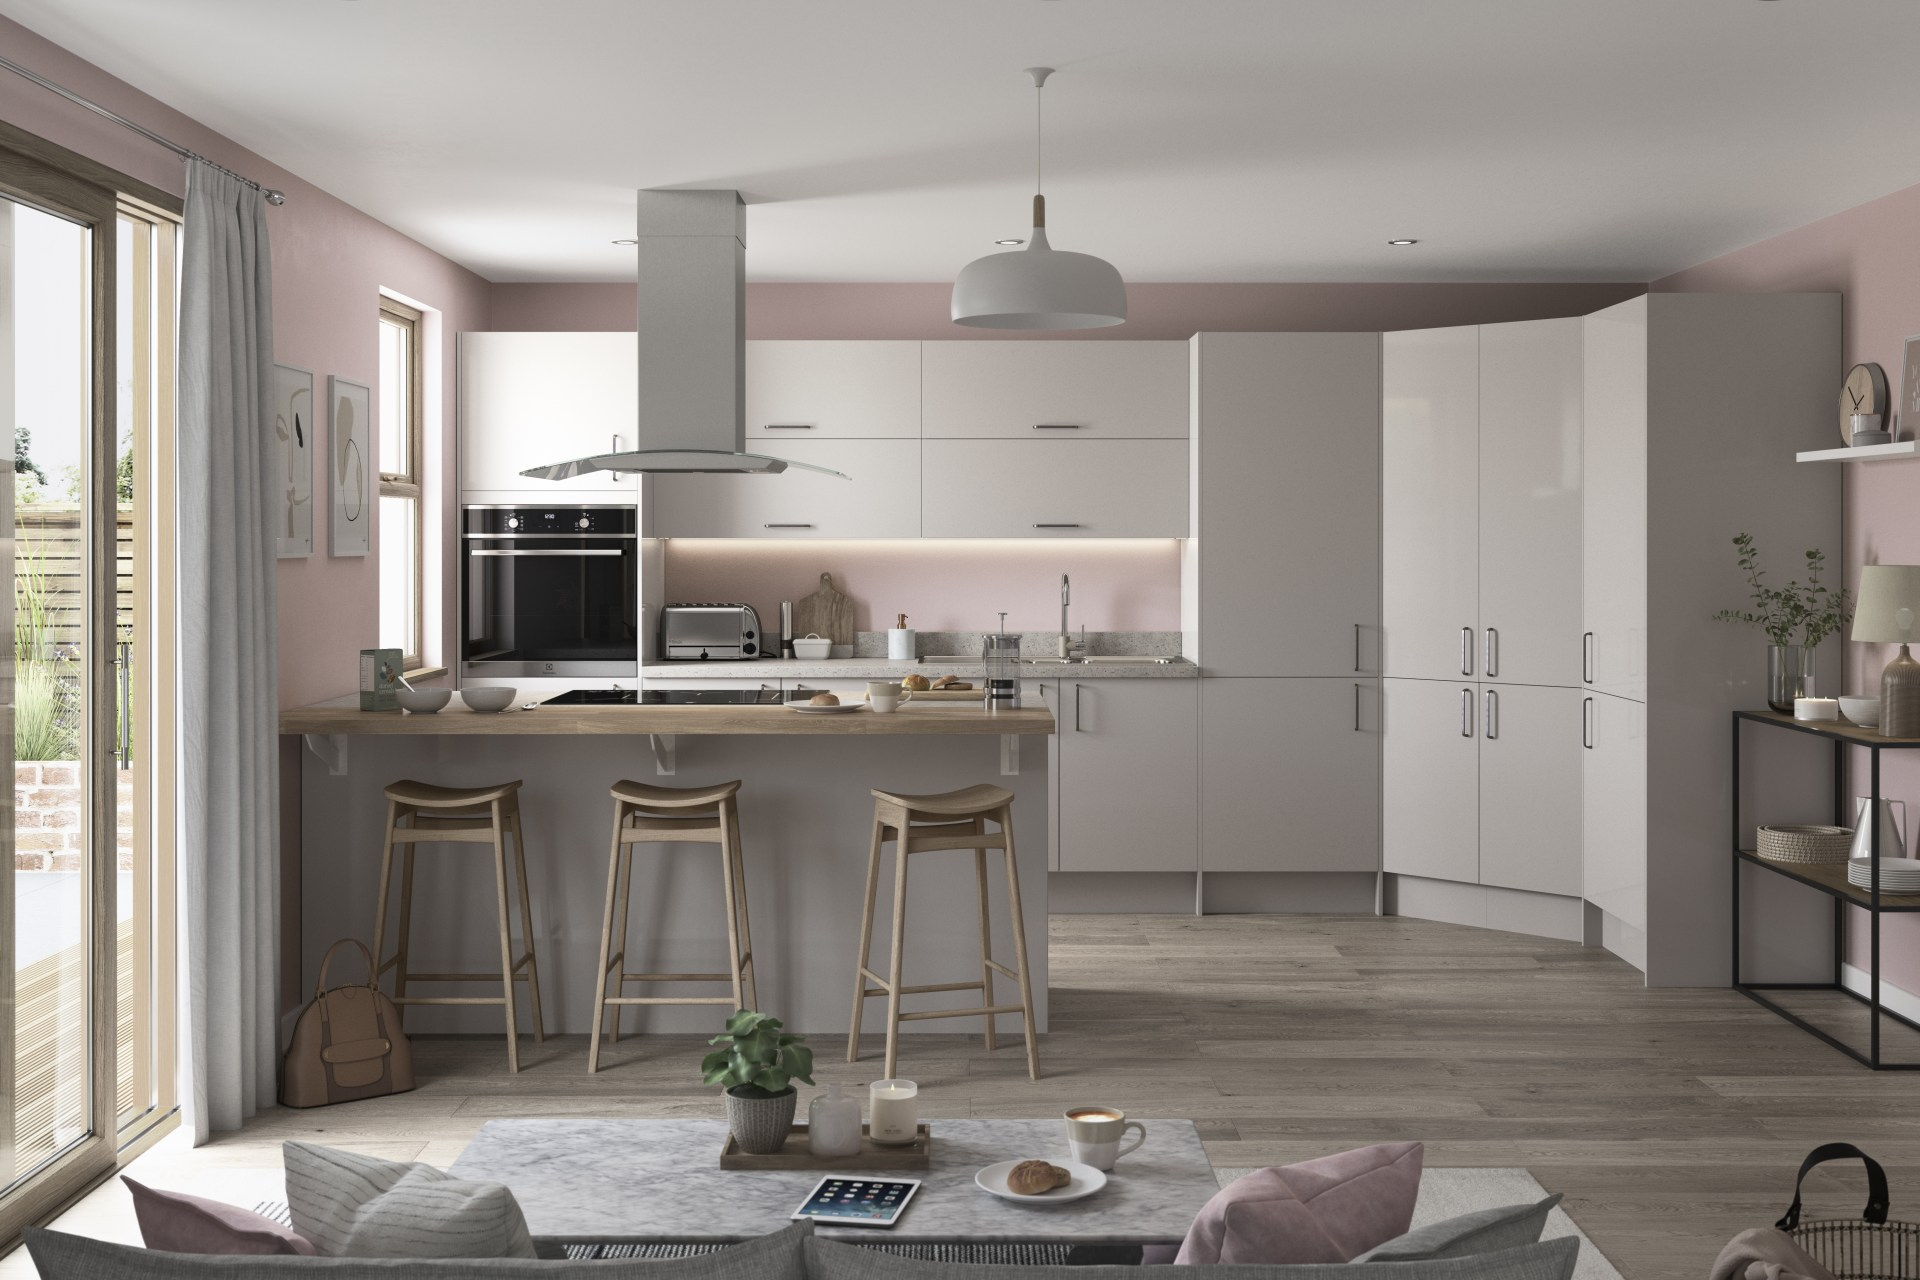 Nova by Magnet. Affordable slab door kitchen available in matt and super glass. 6 colours to choose from.